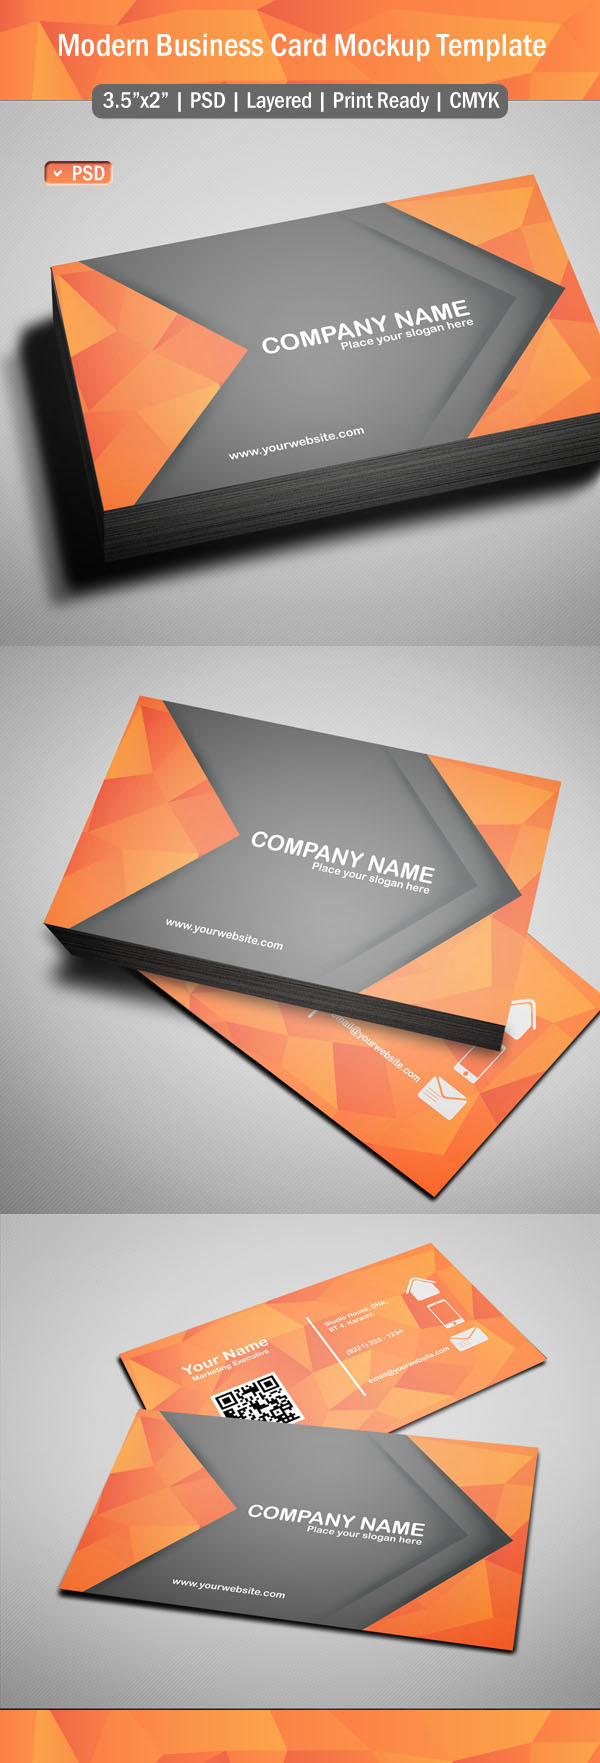 business card template psd 13 best photoshop free psd files for graphic designers 20730